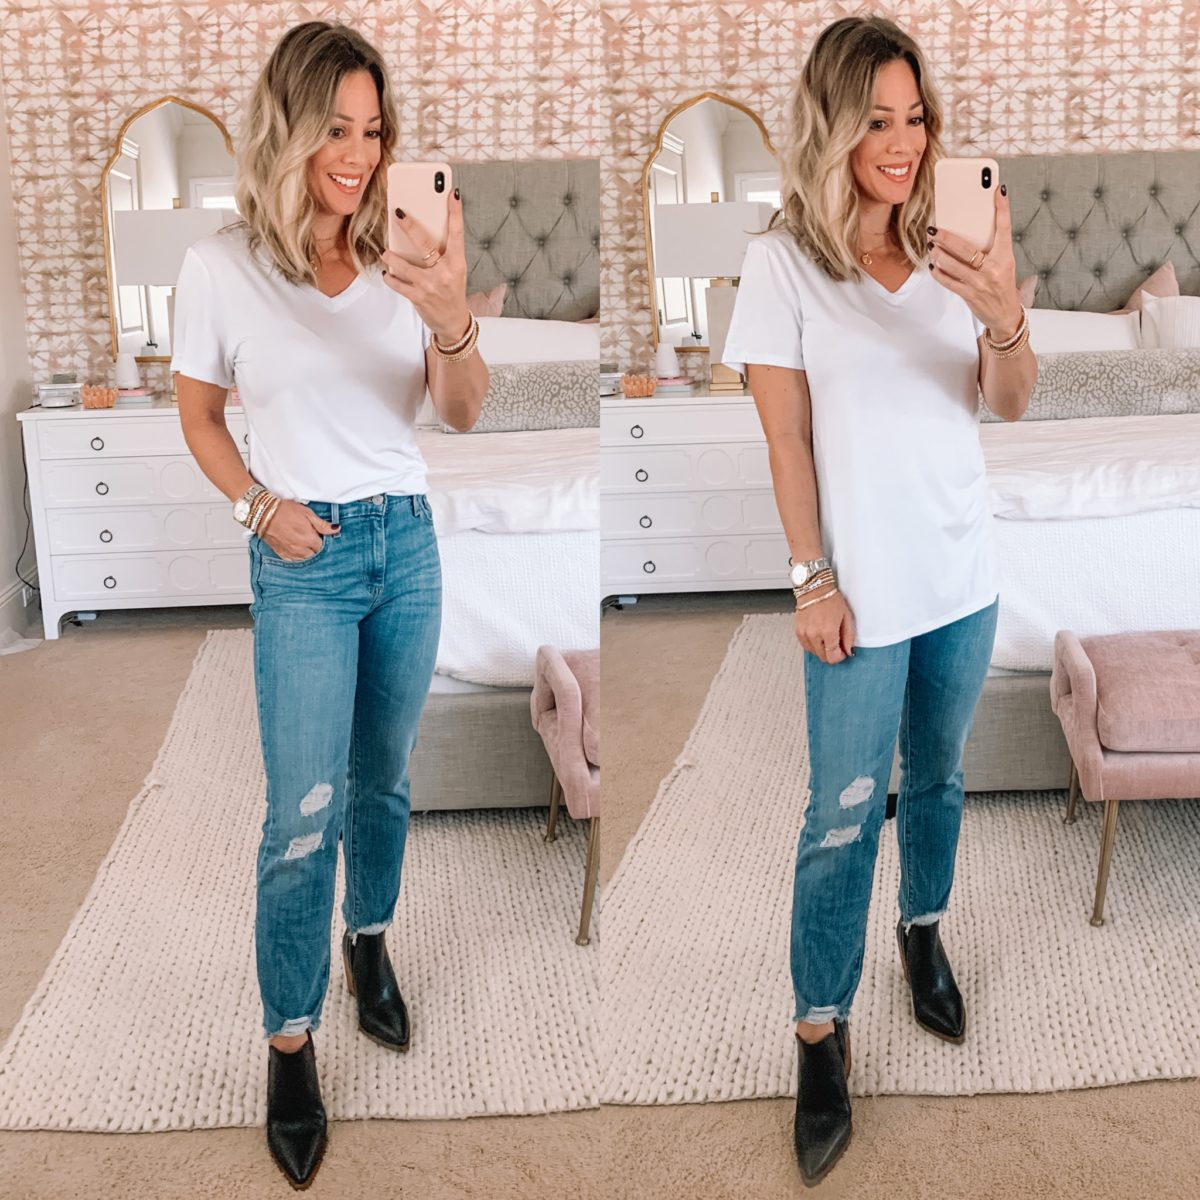 Amazon Fashion Faves, V Neck Tee, Jeans, Booties